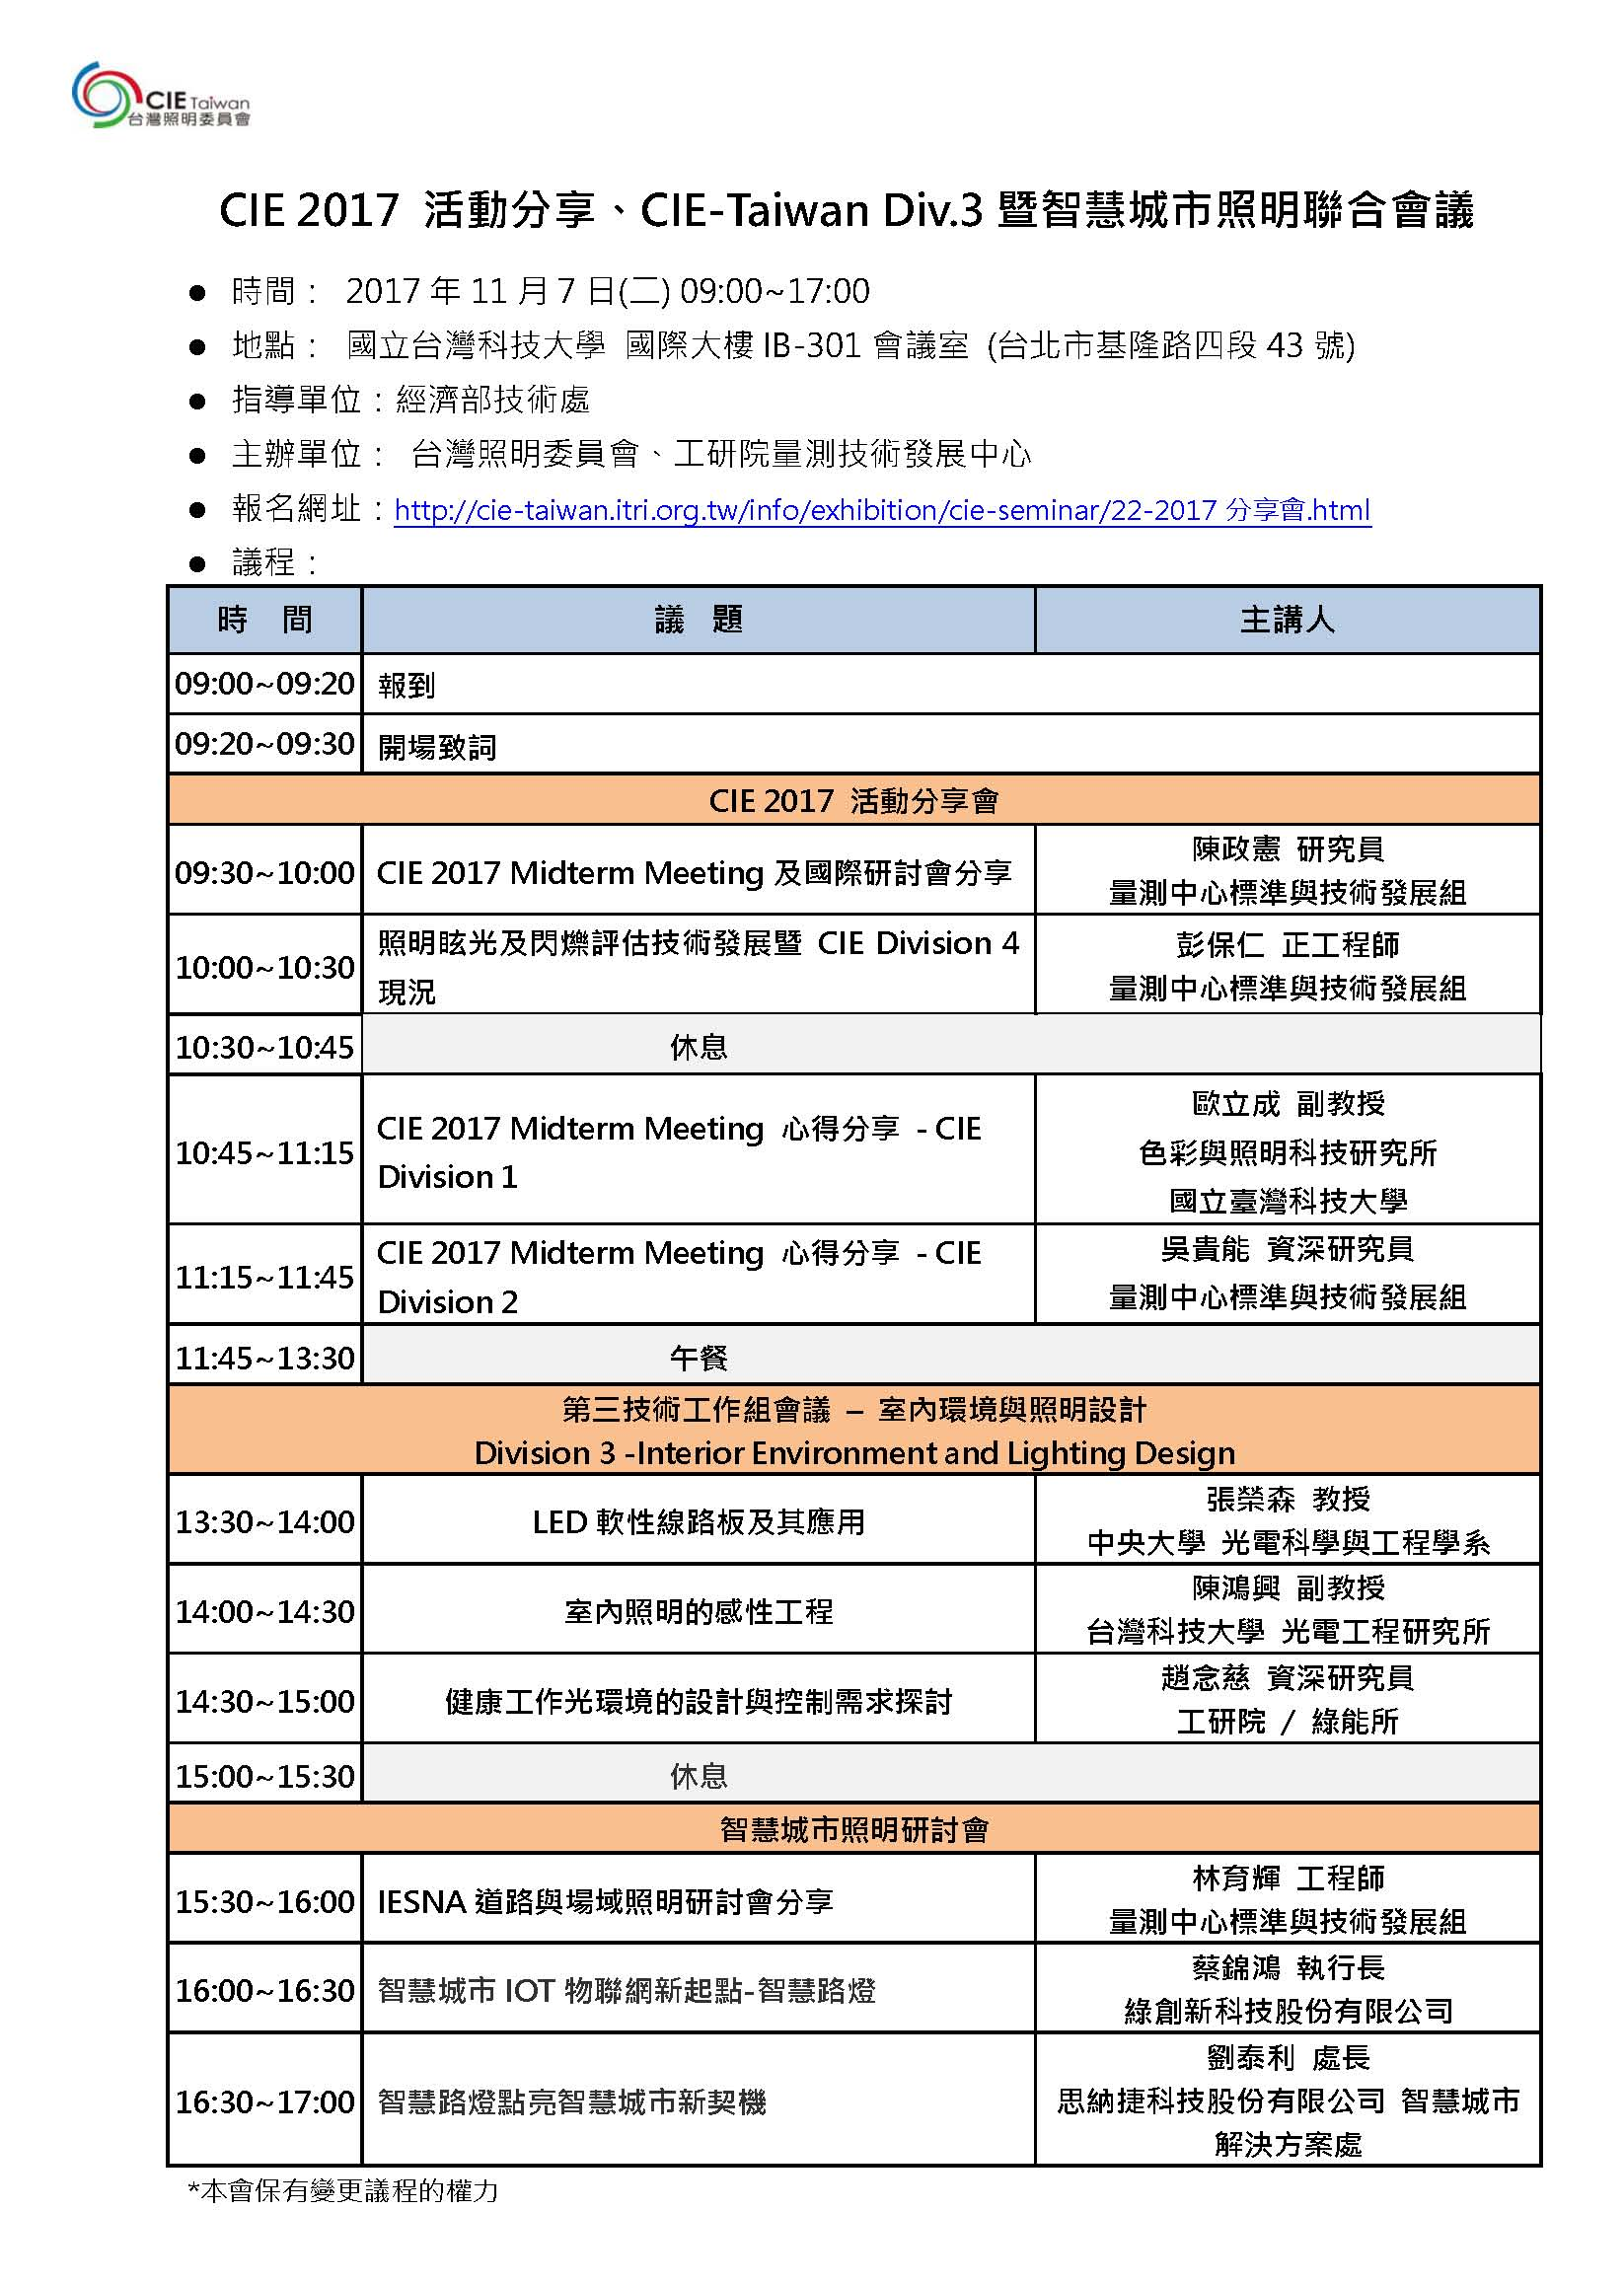 20171107 CIE Taiwan SharingandD3meeting agenda